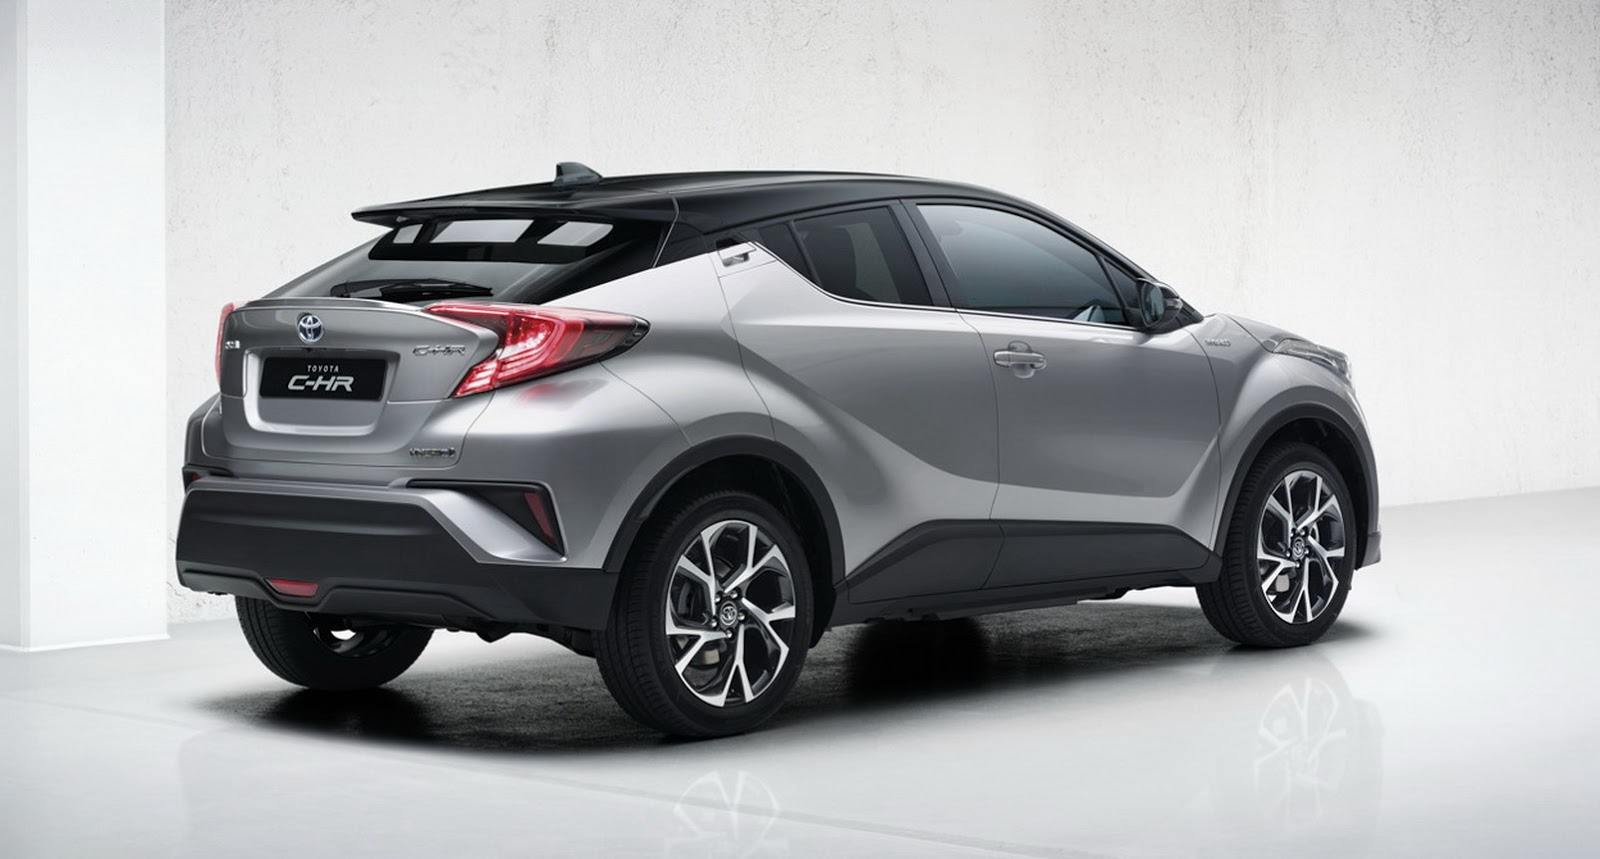 Ch R Hybrid >> New Toyota C-HR Gets 1.2L Turbo, 2.0L And 1.8L Hybrid Powertrains [New Pics] | carscoops.com